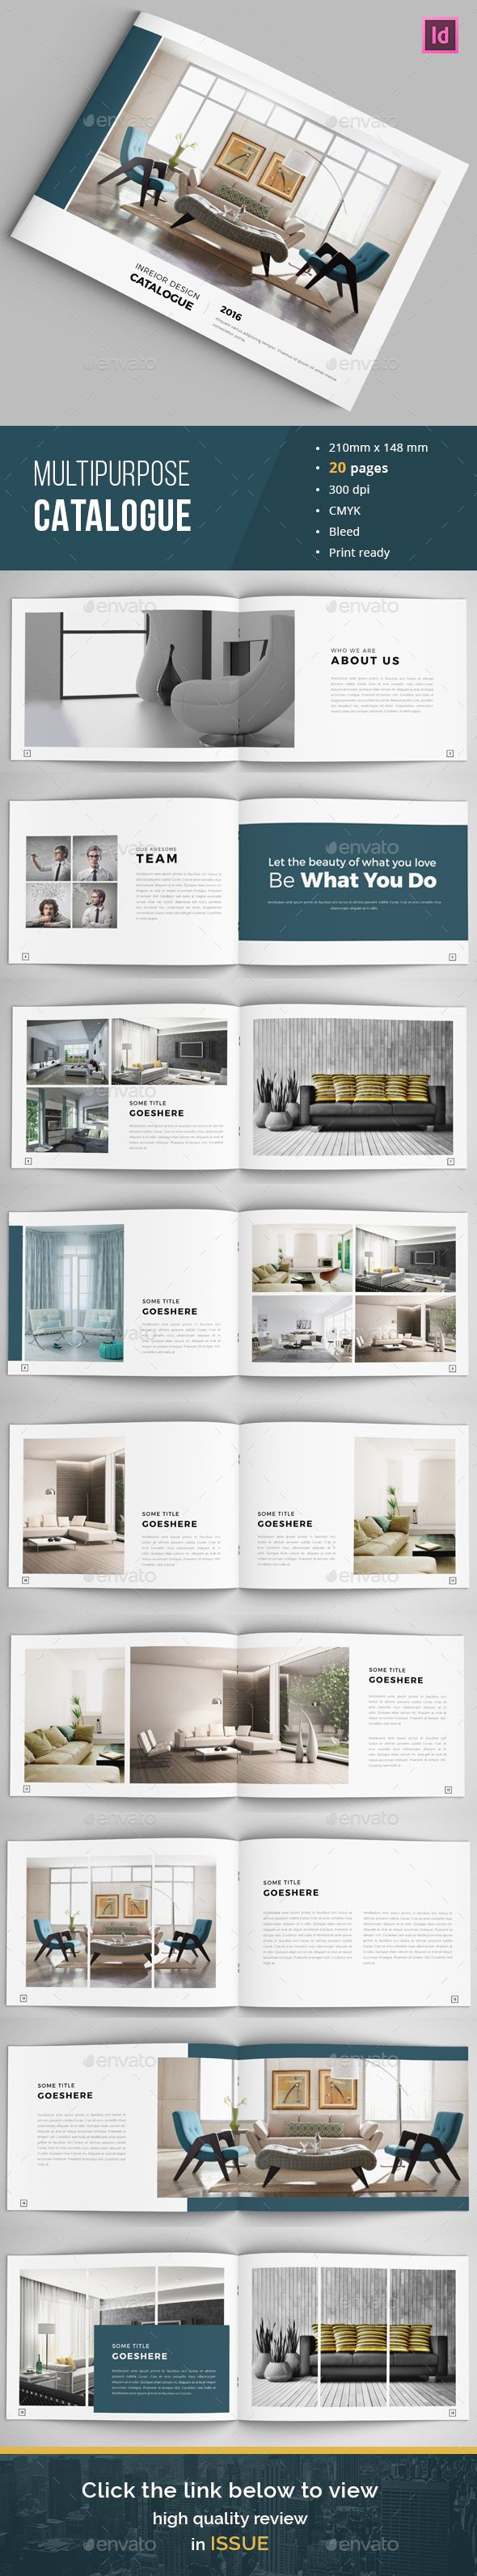 Minimal Indesign Catalogue Template InDesign INDD. Download here: http://graphicriver.net/item/minimal-indesign-catalogue/15762996?ref=ksioks